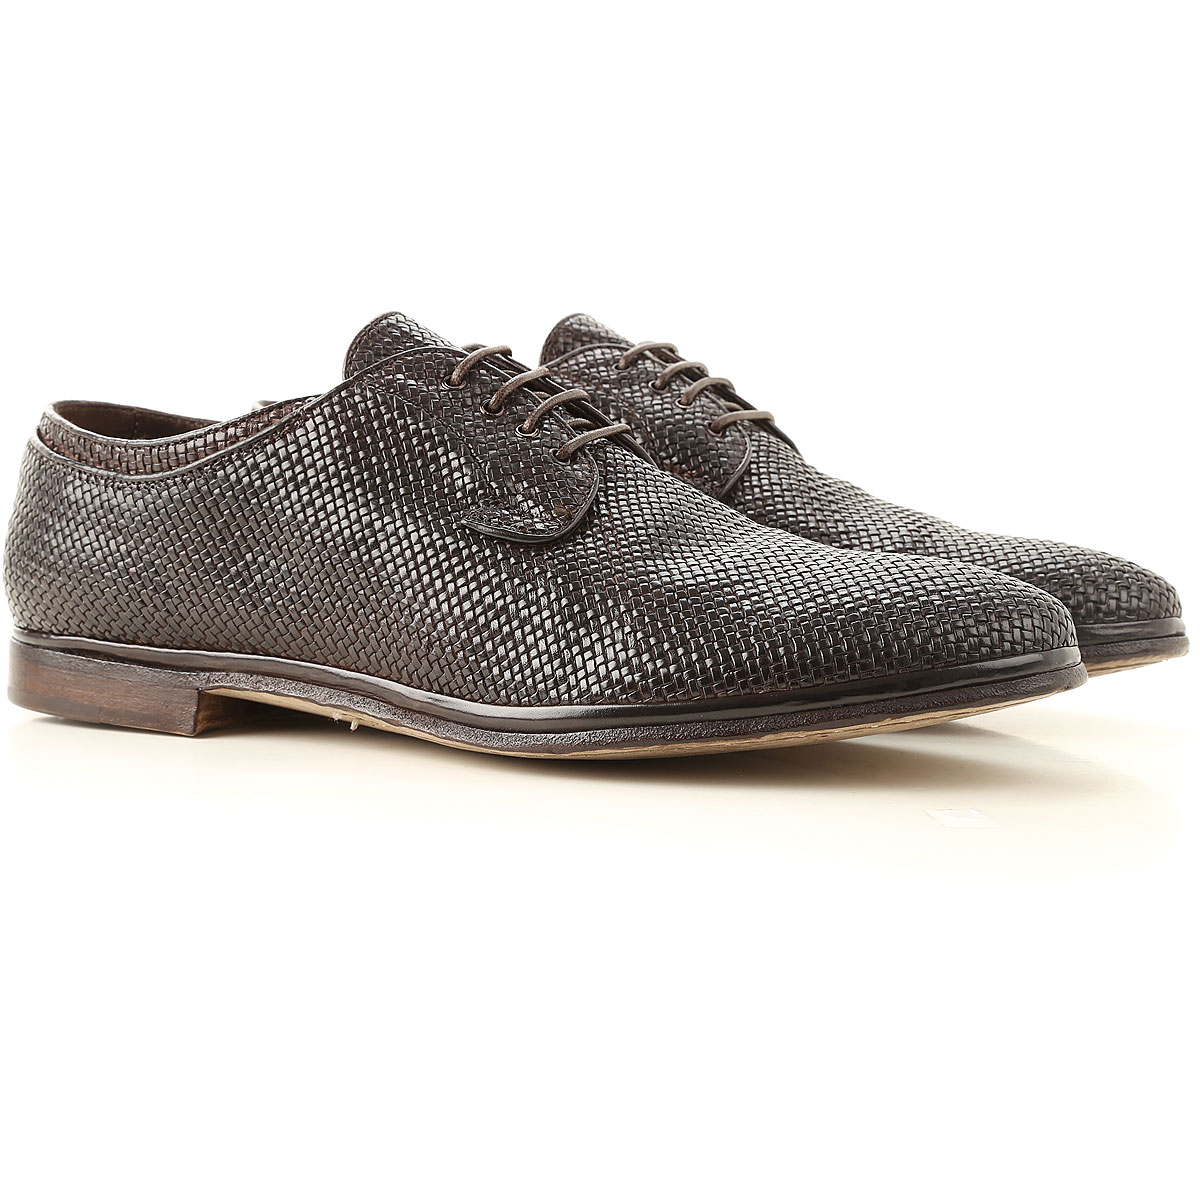 Officine Creative Lace Up Shoes for Men Oxfords, Derbies and Brogues On Sale, Dark Brown, Leather, 2019, 10 10.5 7 7.5 7.75 8 8.5 9 9.5